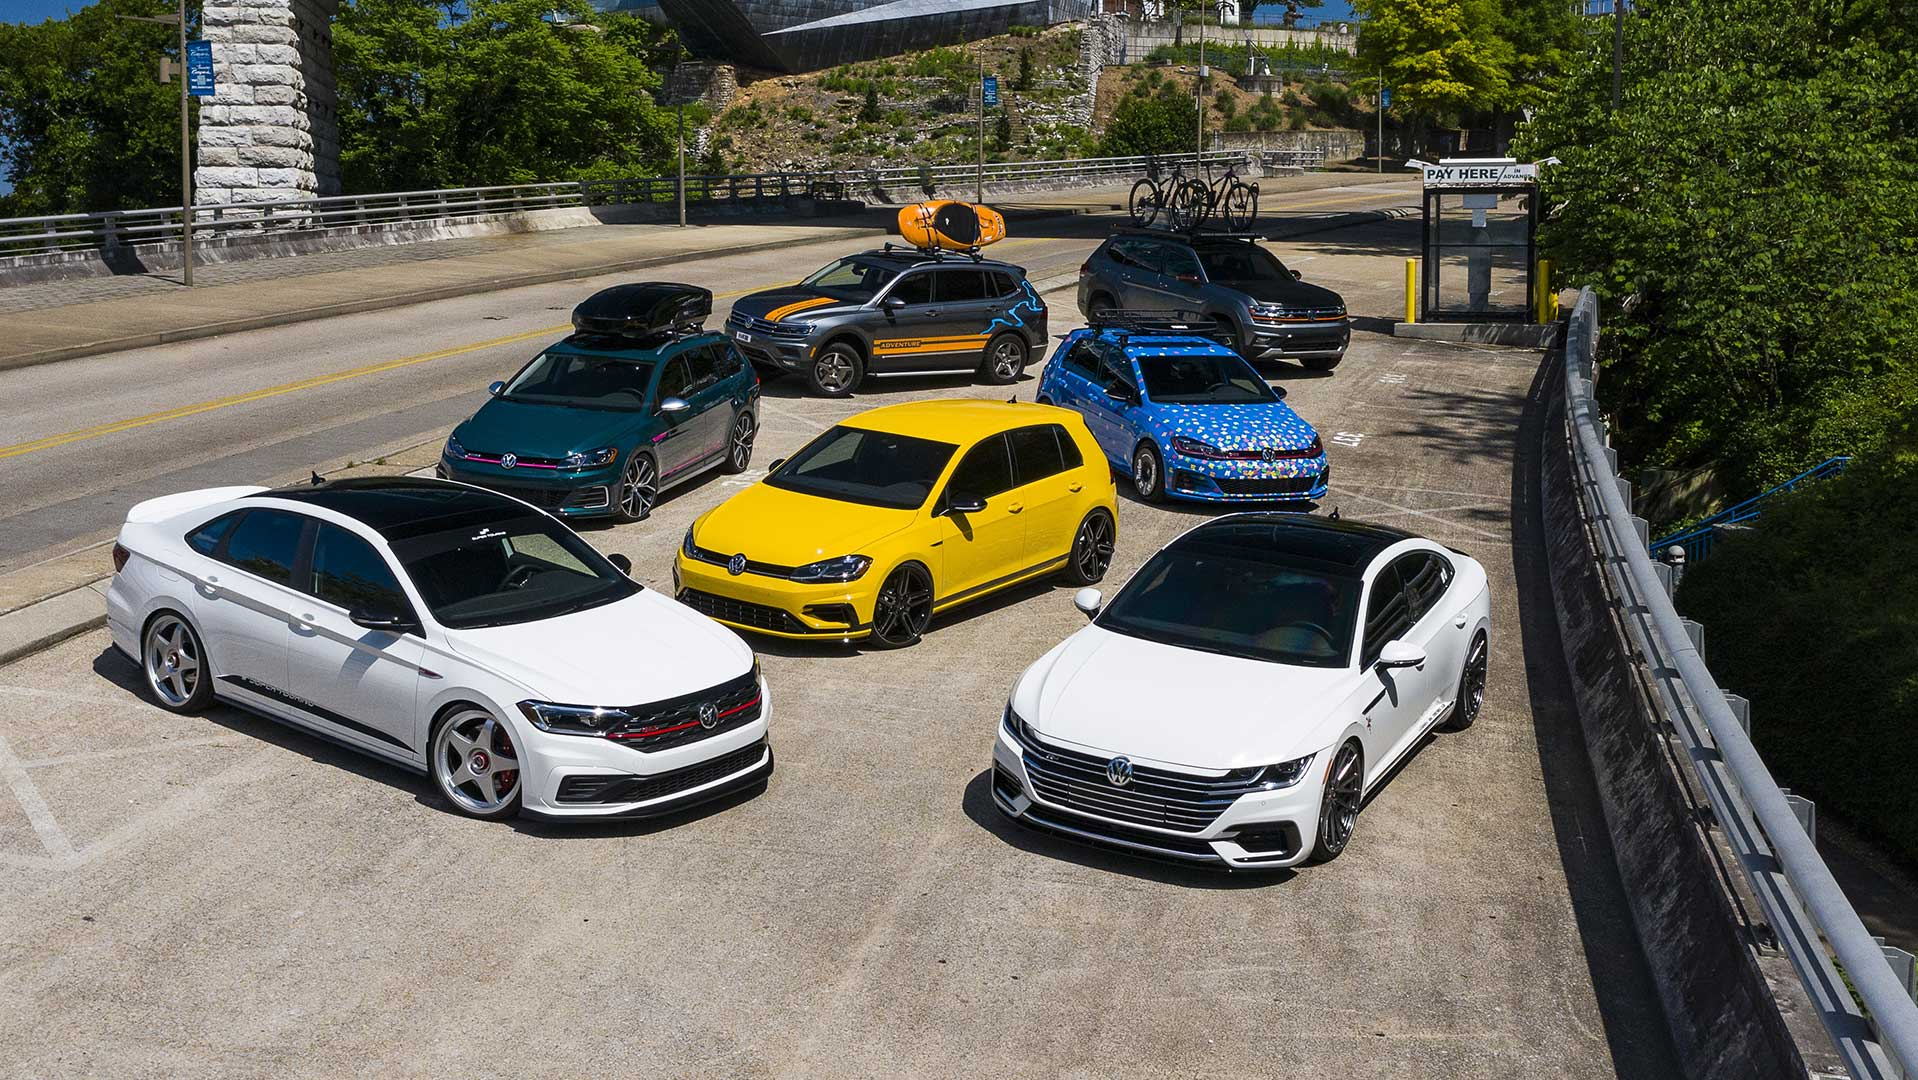 2019 Volkswagen USA Enthusiast Concept Fleet